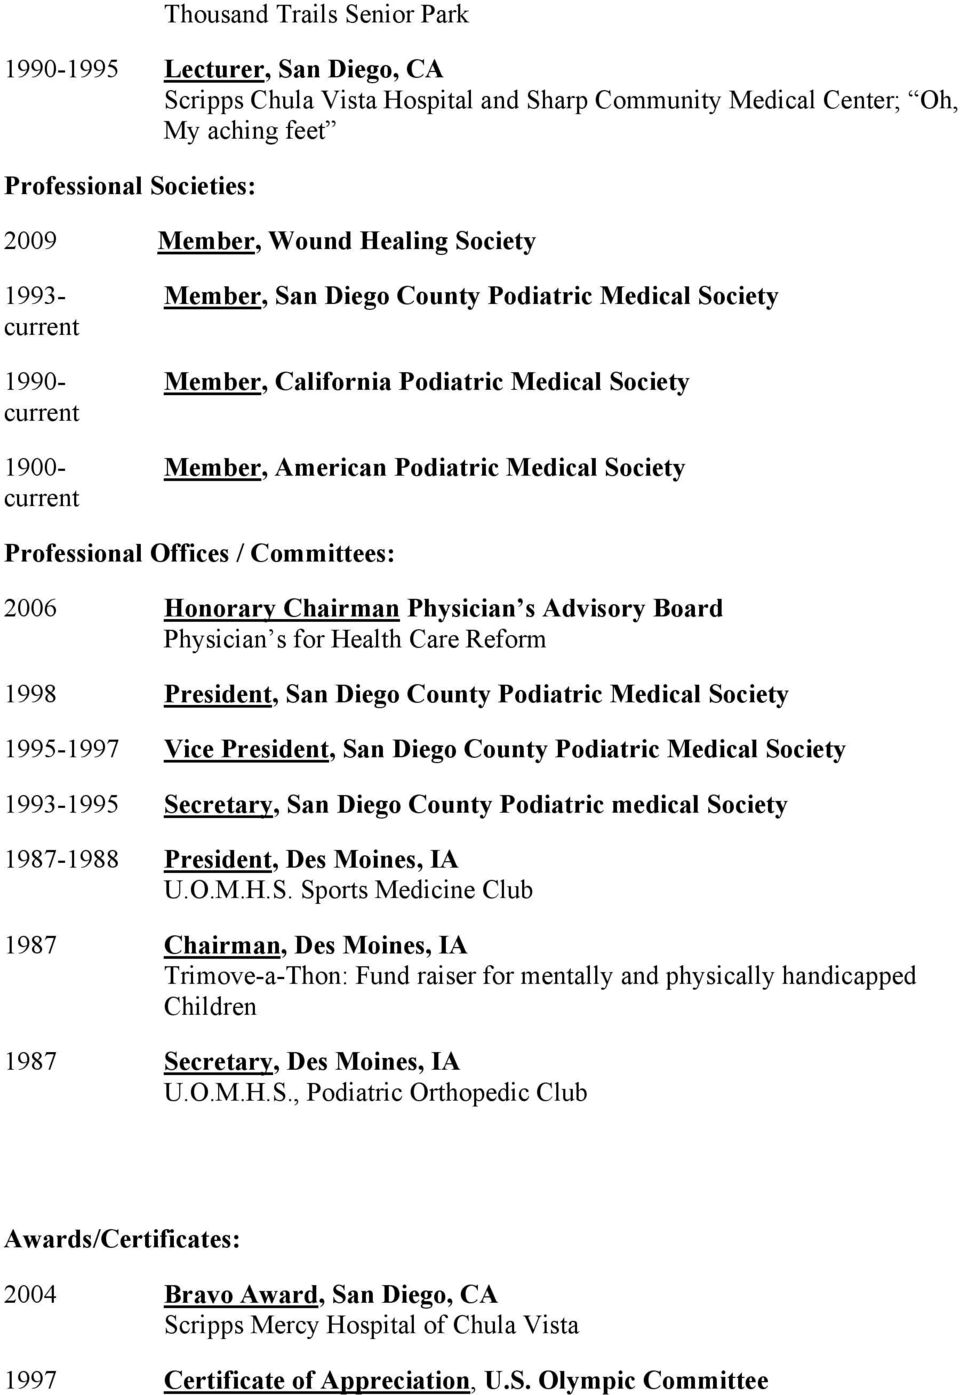 Professional Offices / Committees: 2006 Honorary Chairman Physician s Advisory Board Physician s for Health Care Reform 1998 President, San Diego County Podiatric Medical Society 1995-1997 Vice